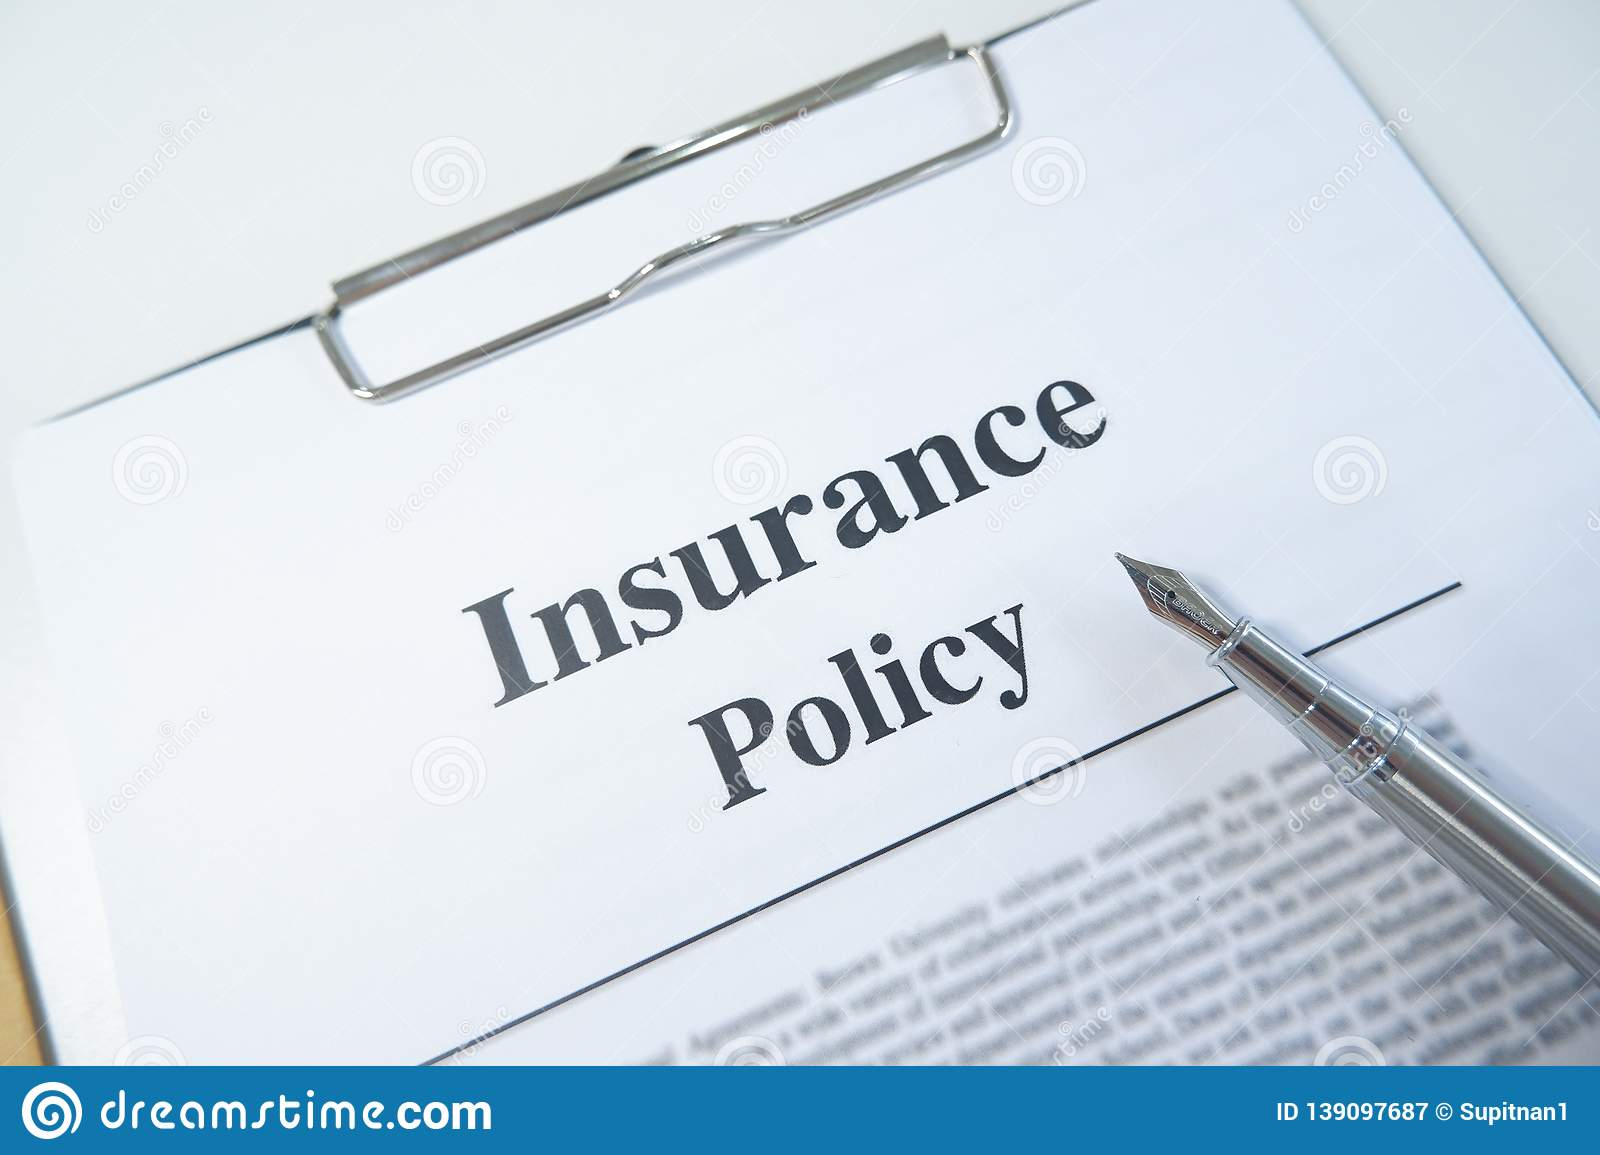 Insurance policy form and pen on desk in office showing risk concept. Life; Health, car, travel